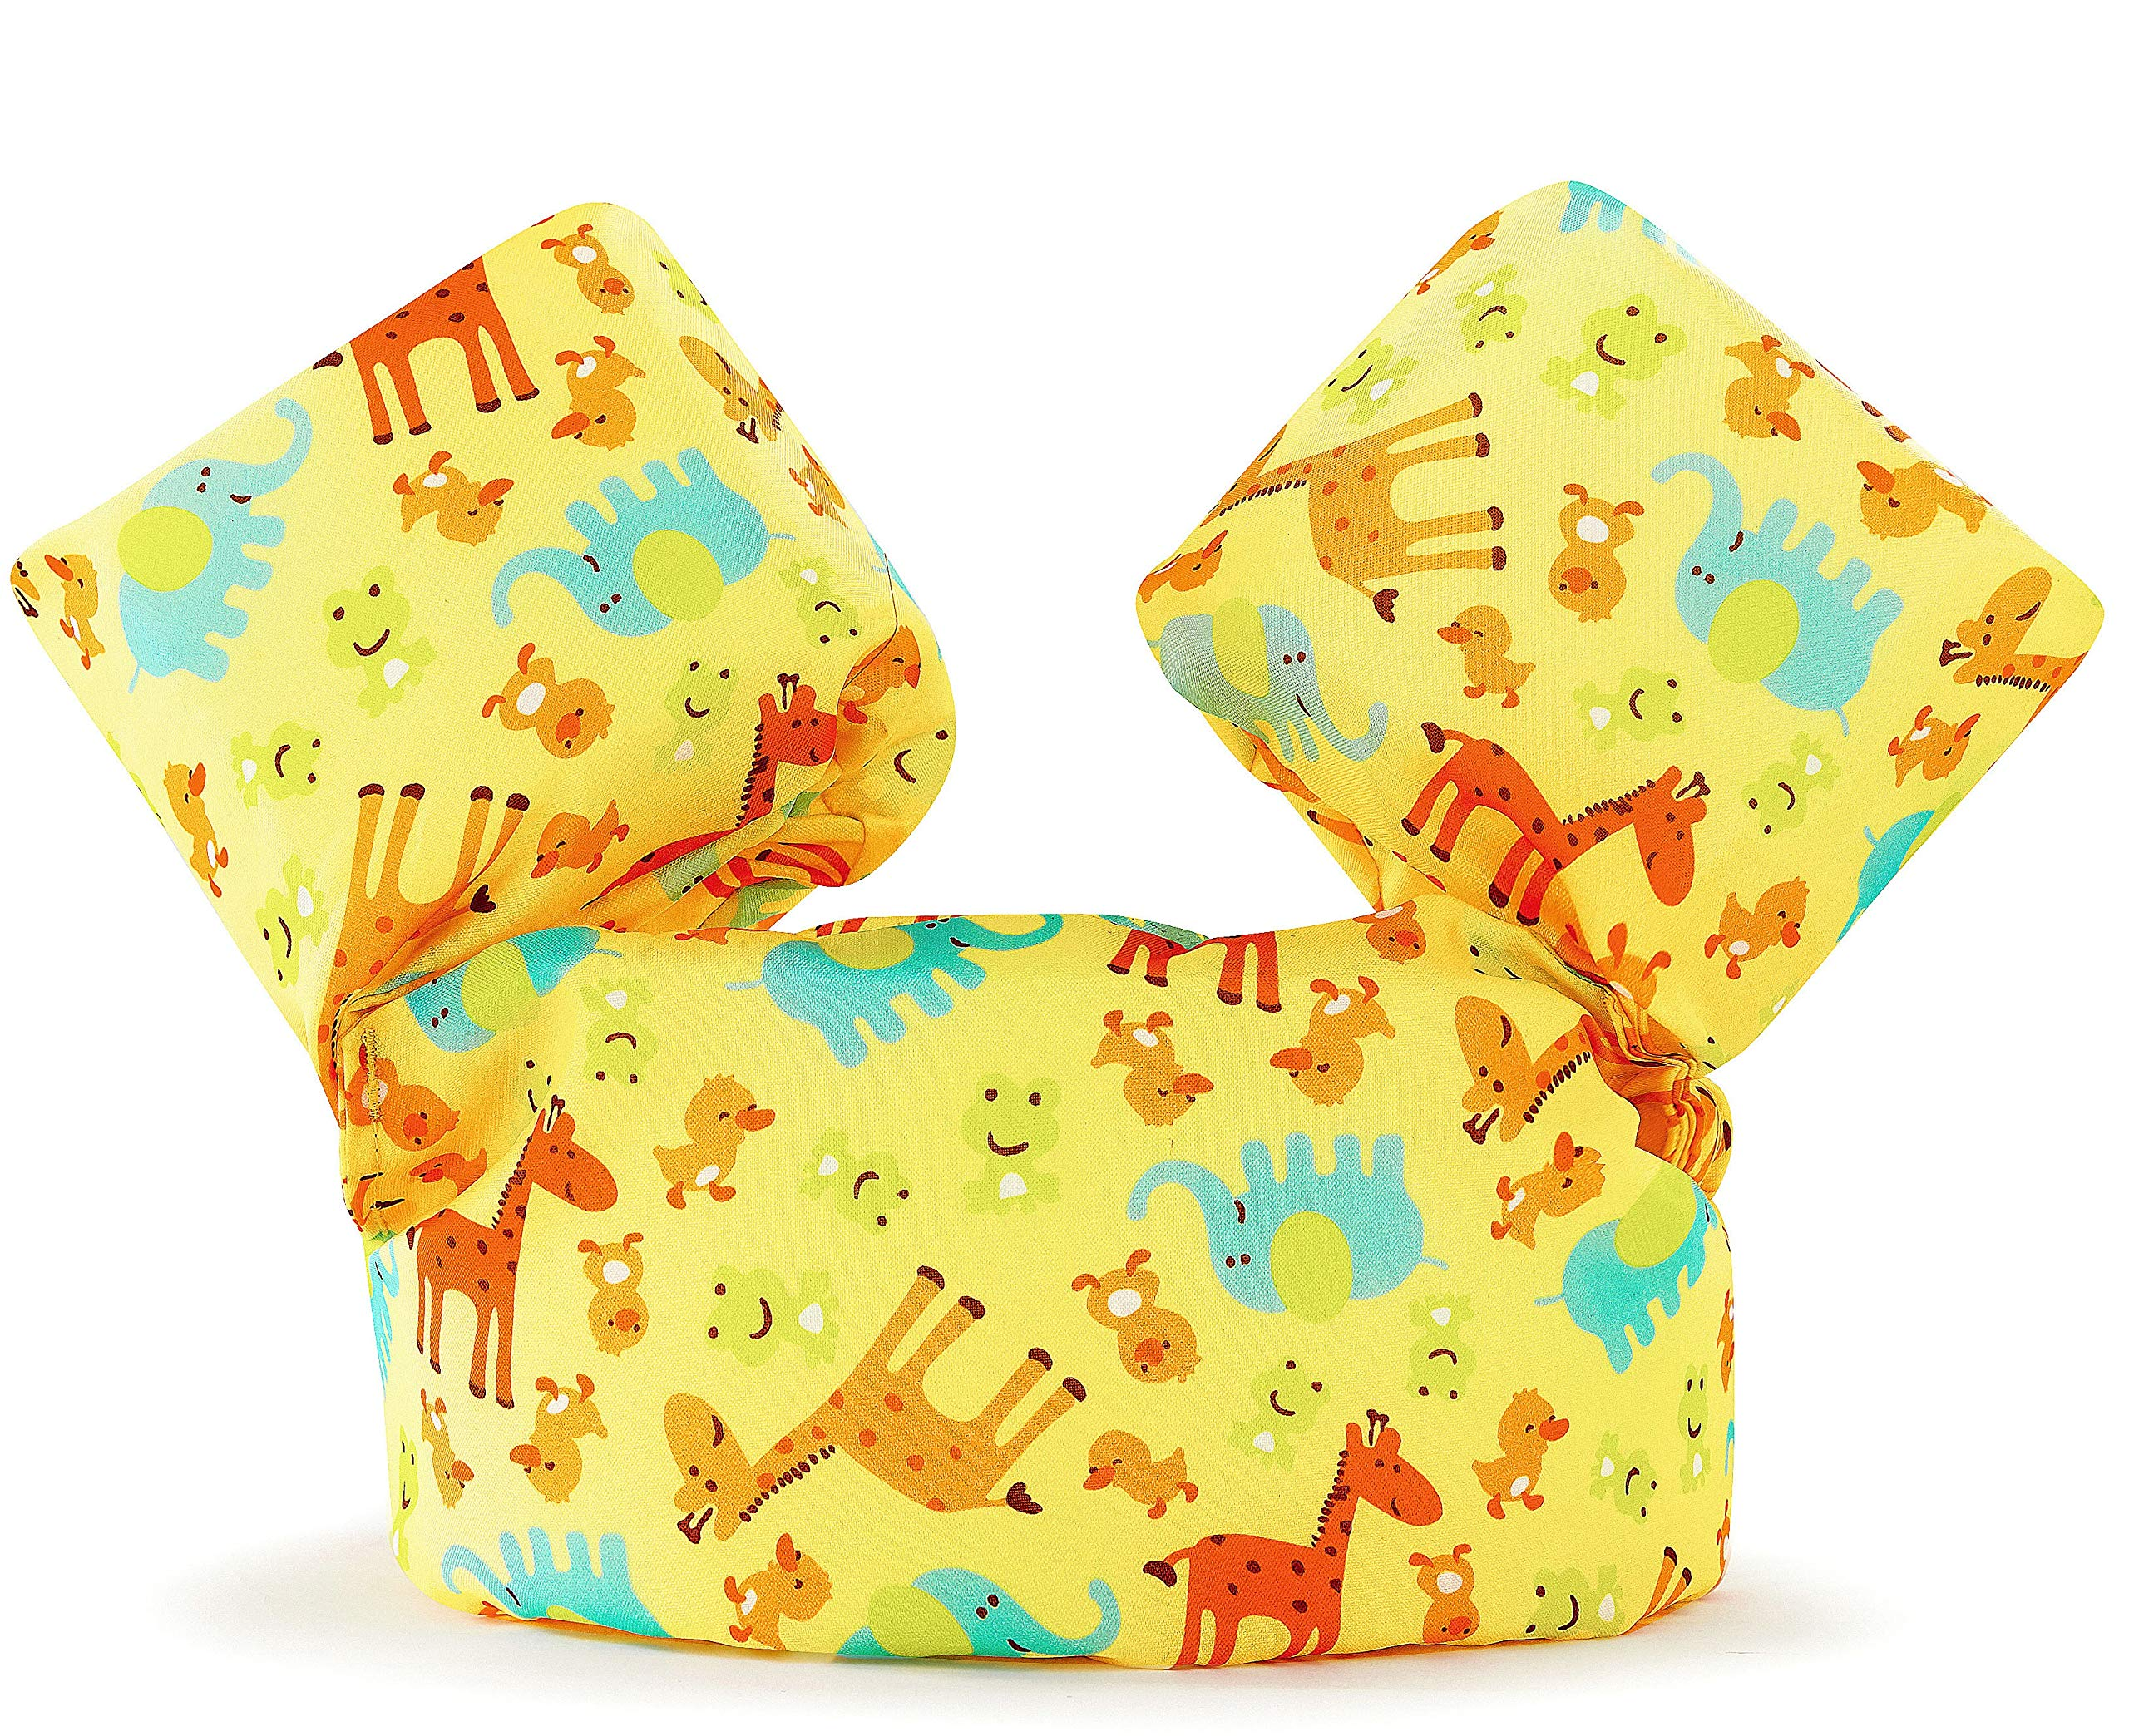 Siran Life Jacket Swim Floaties Kids Swimming Pool Toys Float Vest for Baby/Infant/Toddler 30-50lbs Kids Outdoor Recreation Yellow Giraffe